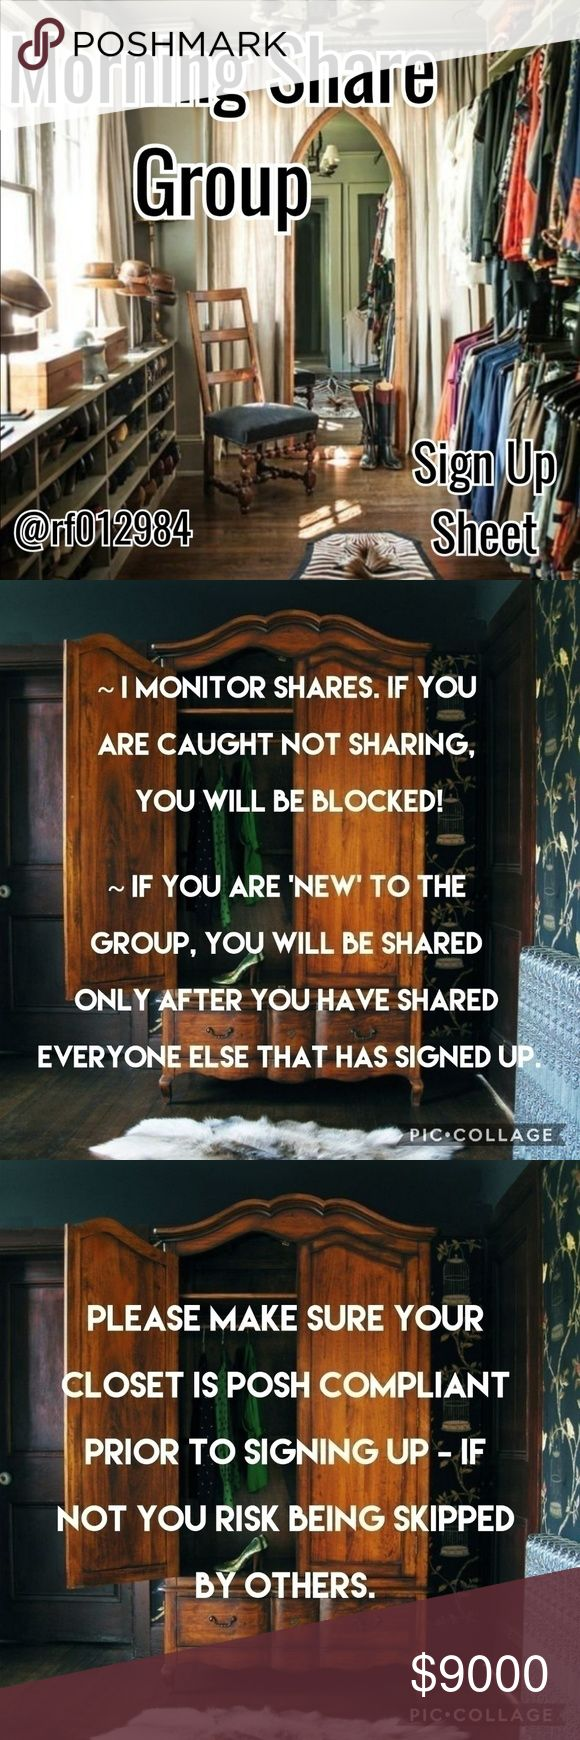 ☕1/11 Sign Up Sheet☕Morning Share Group Please use the Q&A listing for questions! Happy sharing and thanks for joining!    🌟Sign up closes 2pm (EST)   🌟May start sharing at 5am your time  🌟Share 4 available listings from each closet    🌟Sign up by tagging your own name                                       (Ex: @rf012984)   🌟Please SIGN OUT after sign up sheet is closed   🌟Please complete all shares by midnight your time!   🍃New to the group? Please type 'New' next to your name…